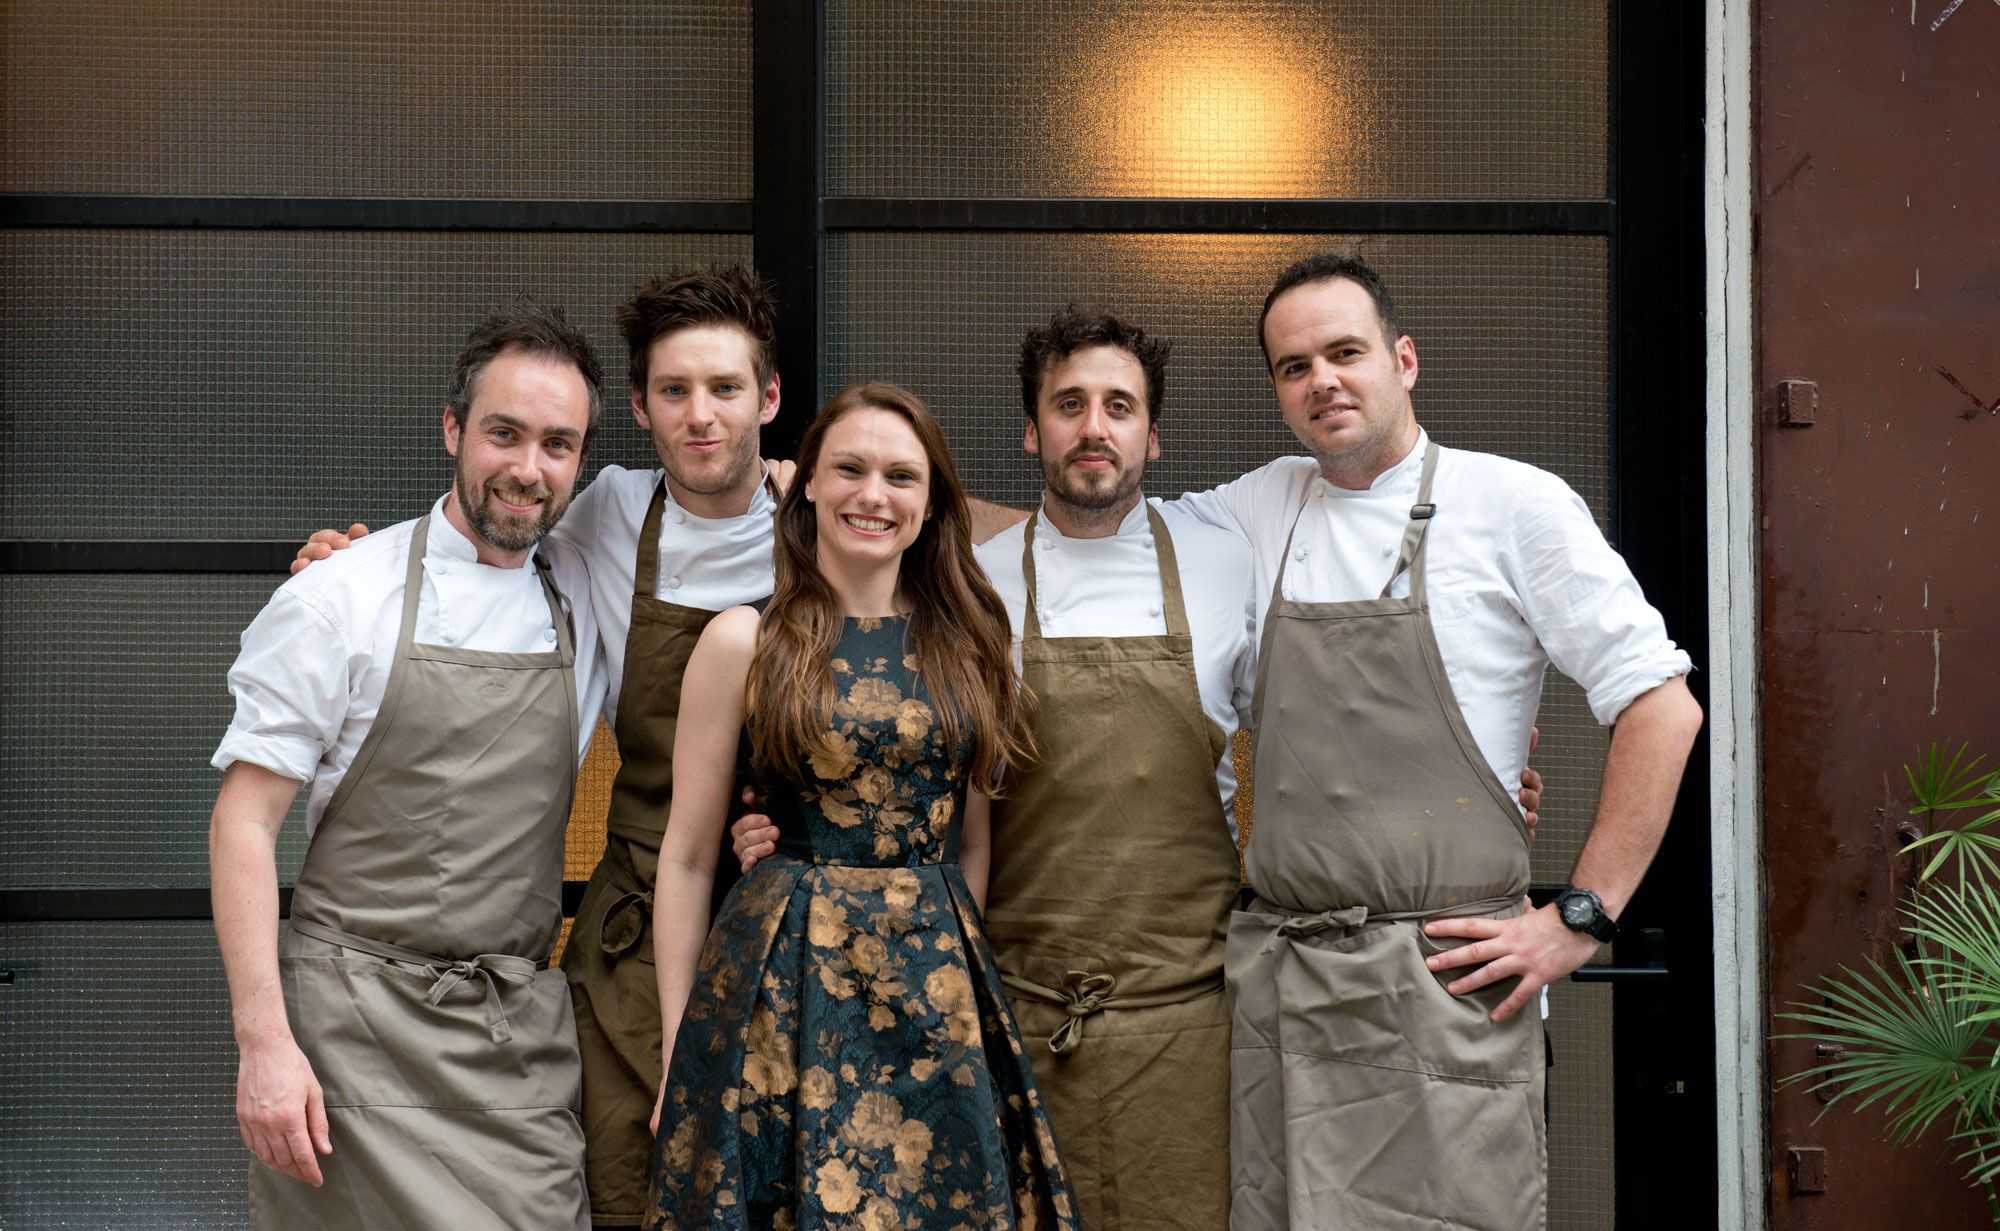 One Star House Party, the Team of Ex-Noma Chefs Hosting a Year-Long Pop-Up in Hong Kong